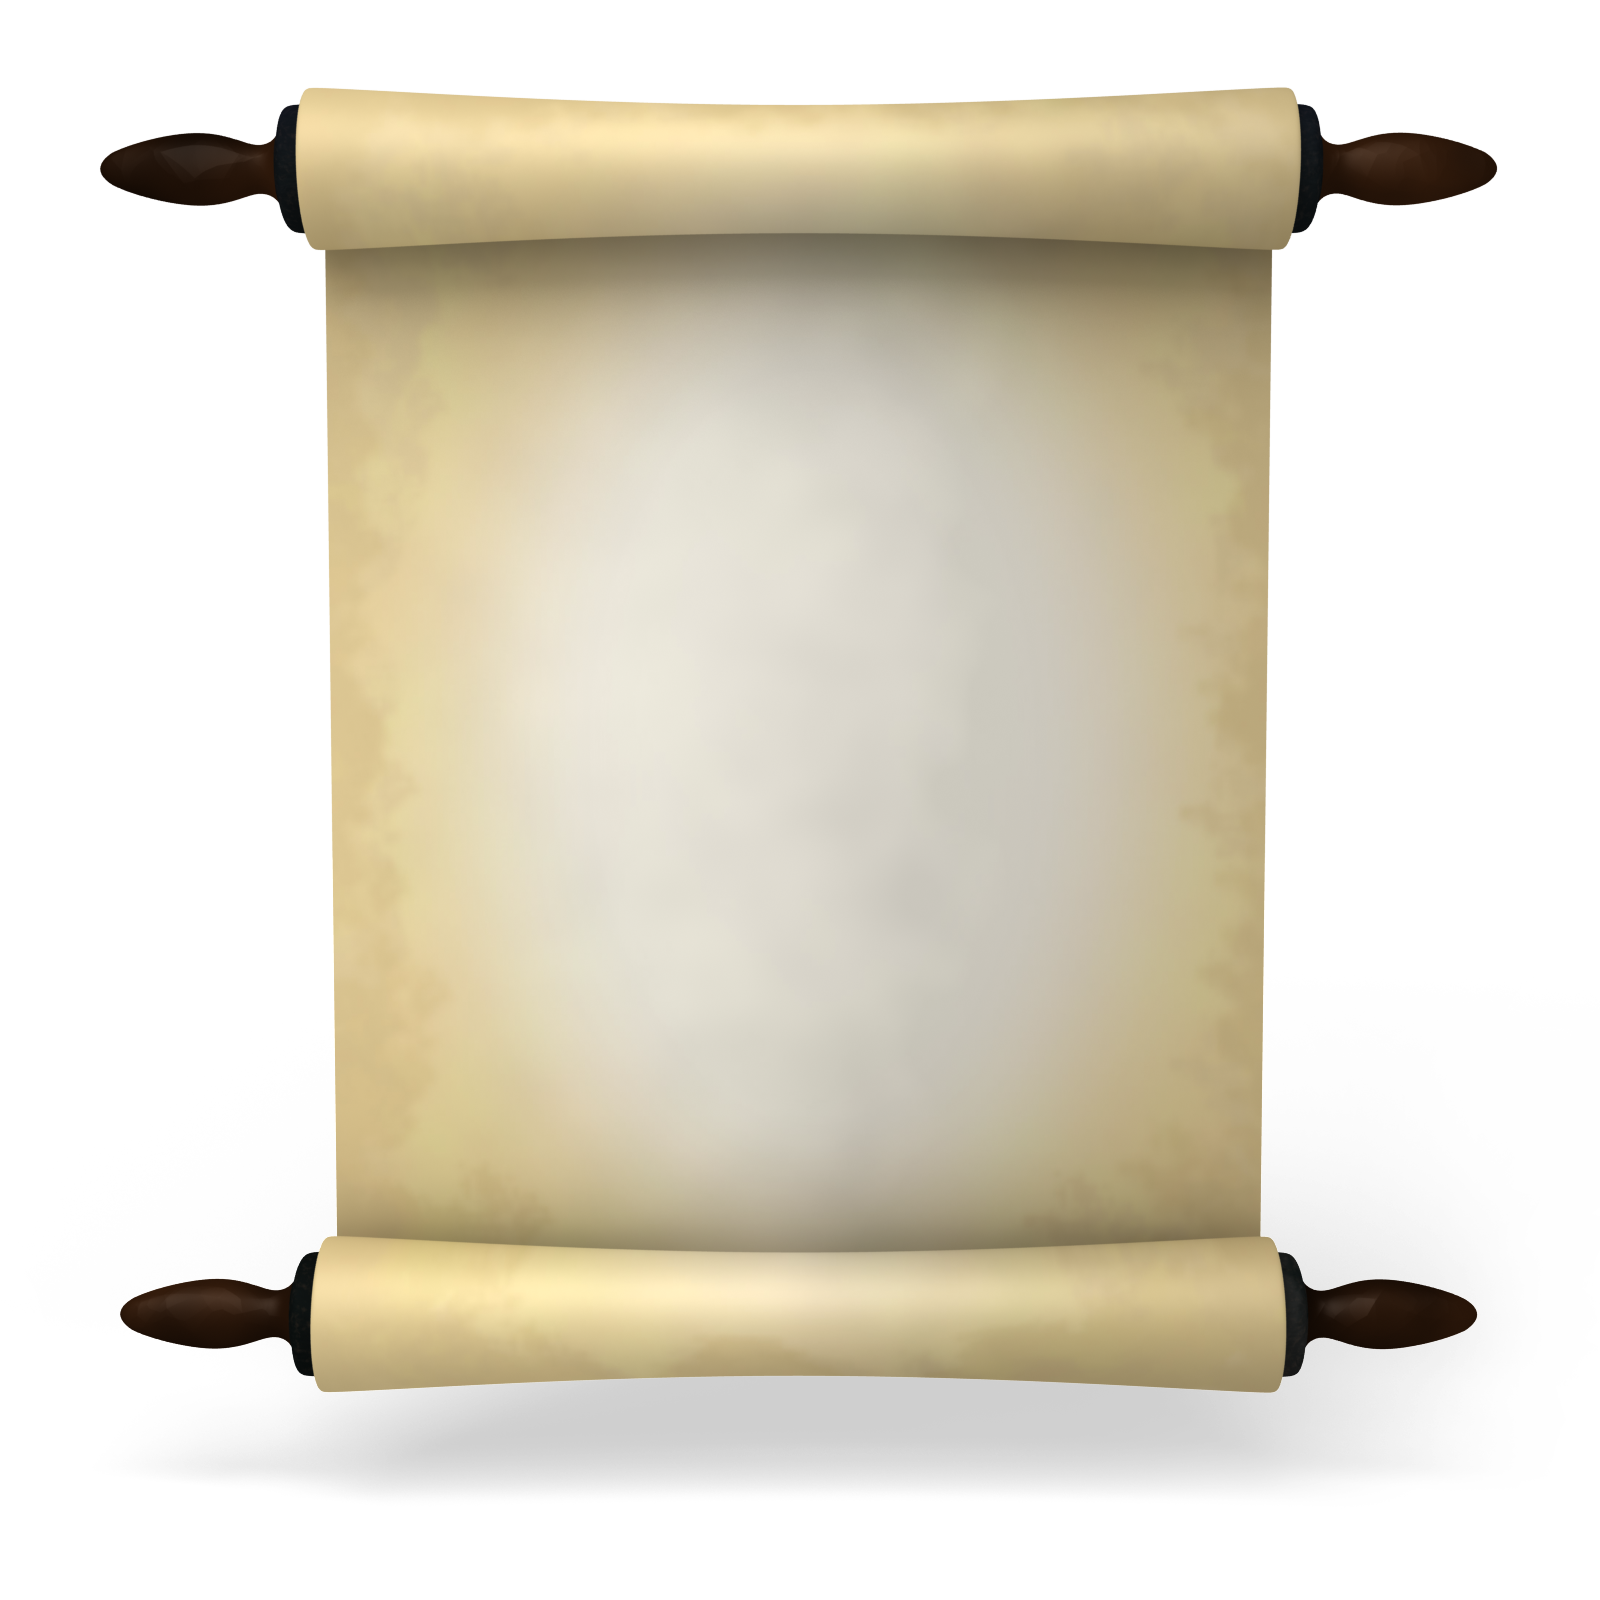 ancient scroll paper clipart